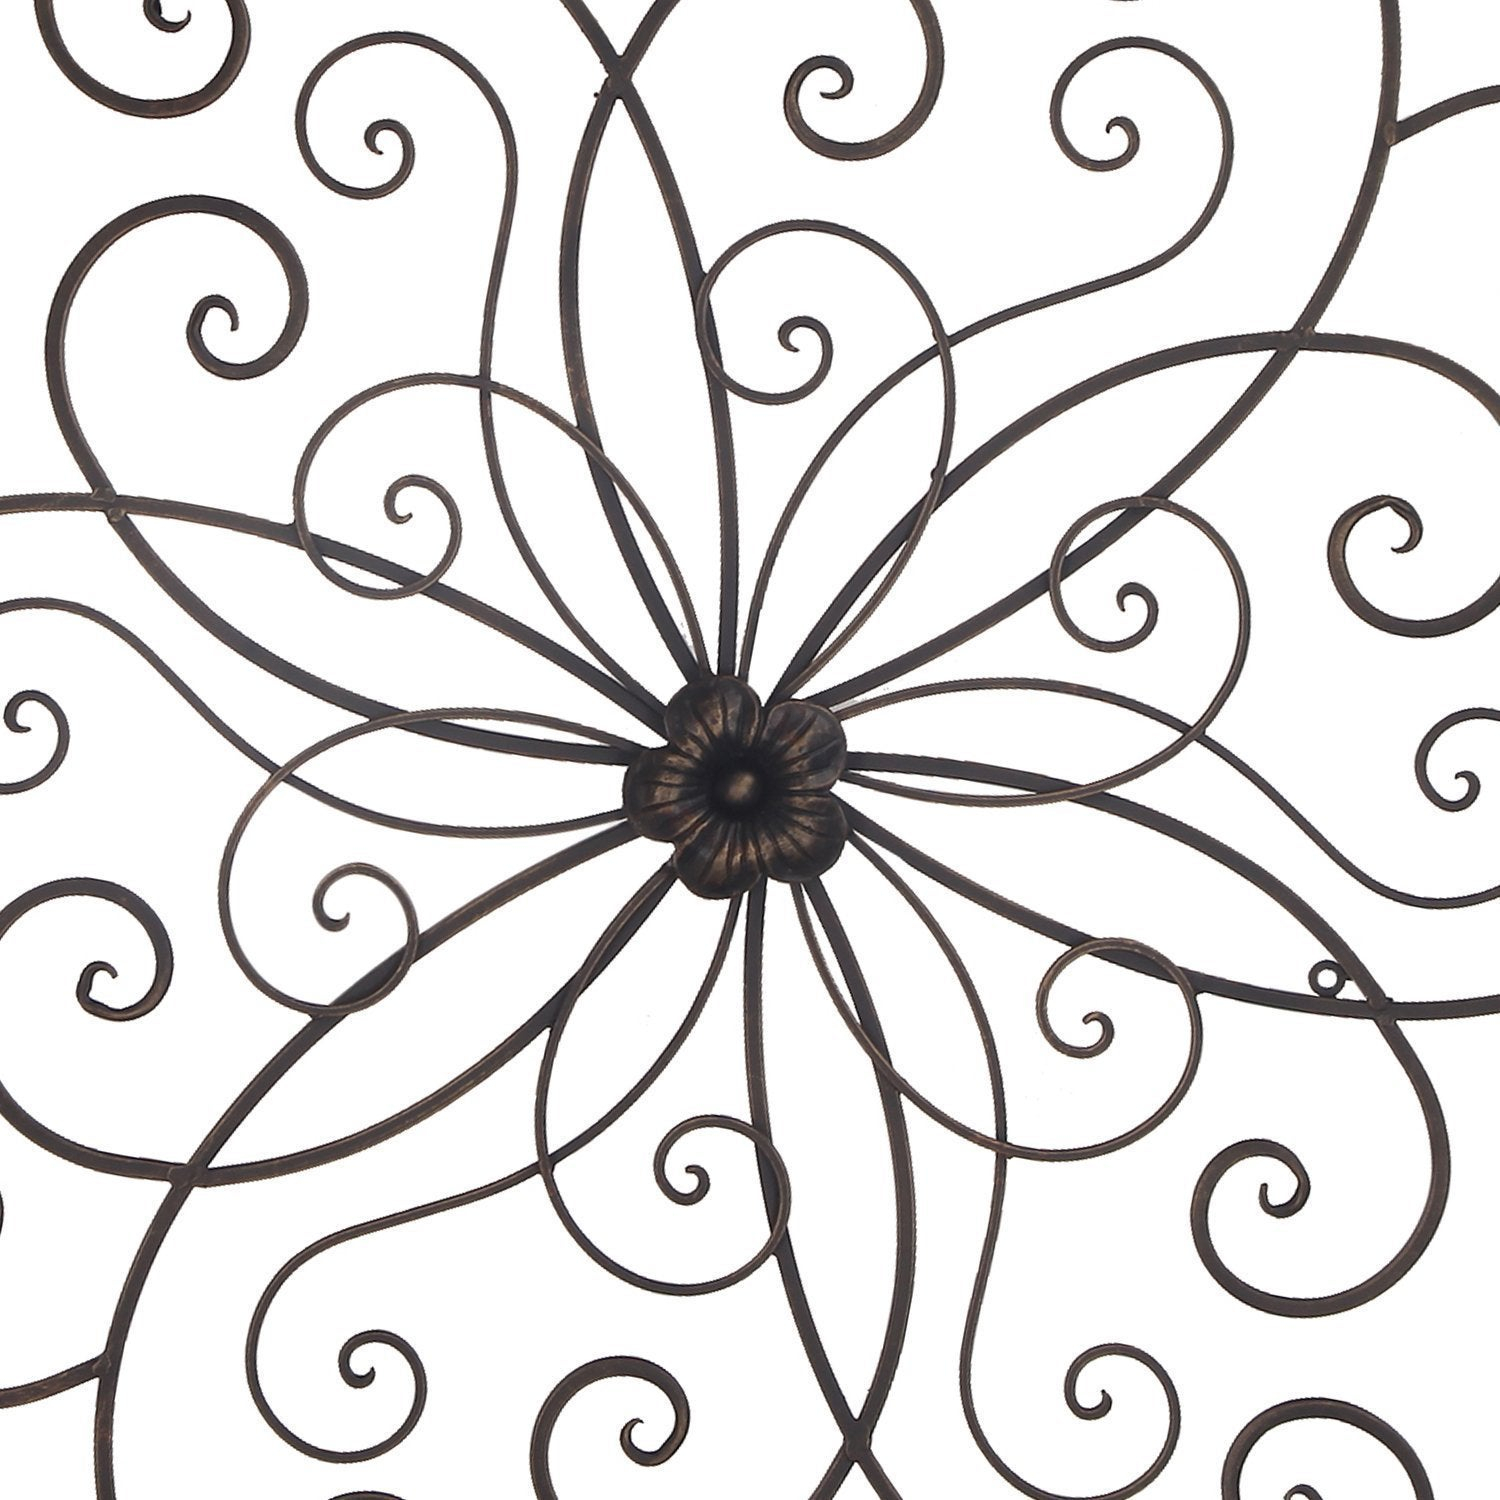 Adeco Bronze Flower Urban Design Metal Wall Decor For Nature Home Art within Flower Urban Design Metal Wall Decor (Image 3 of 30)